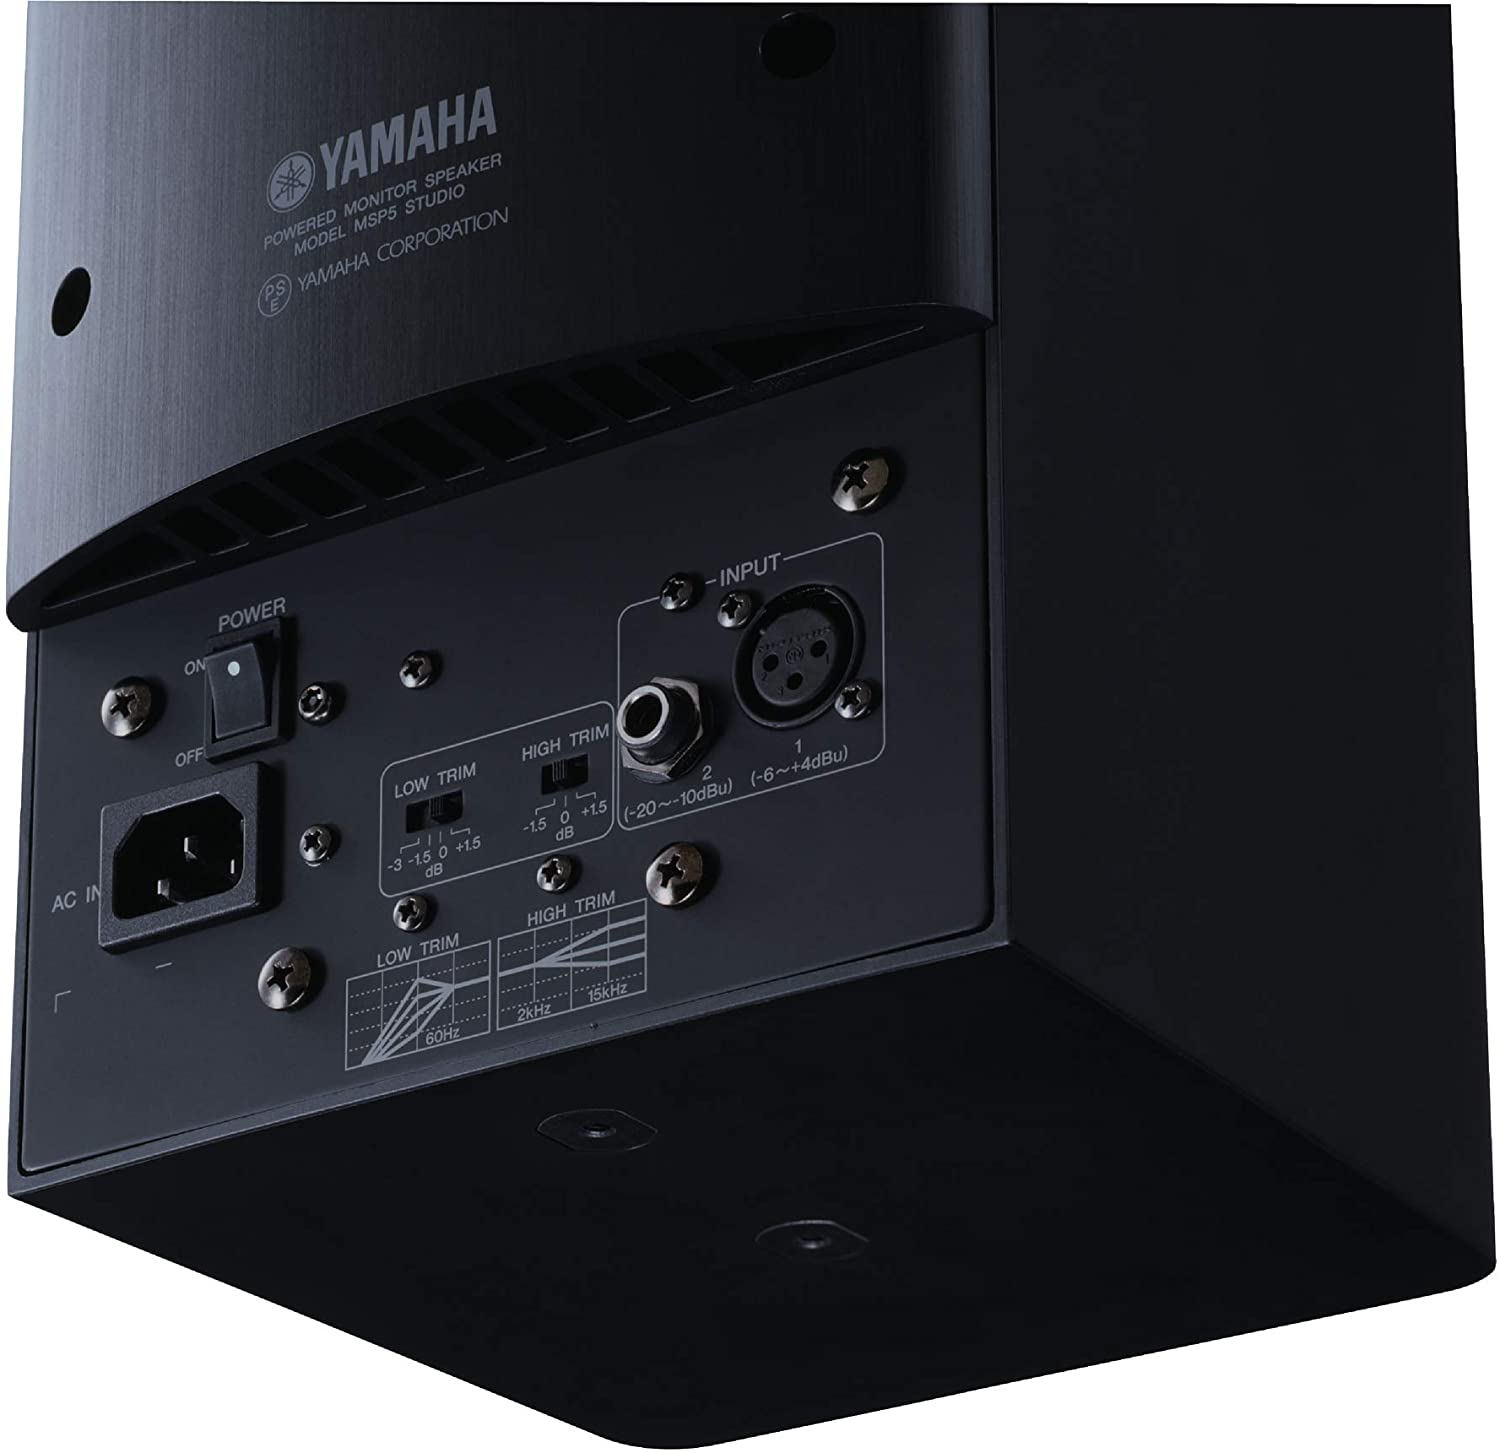 Yamaha MSP5 Studio - Interfaces